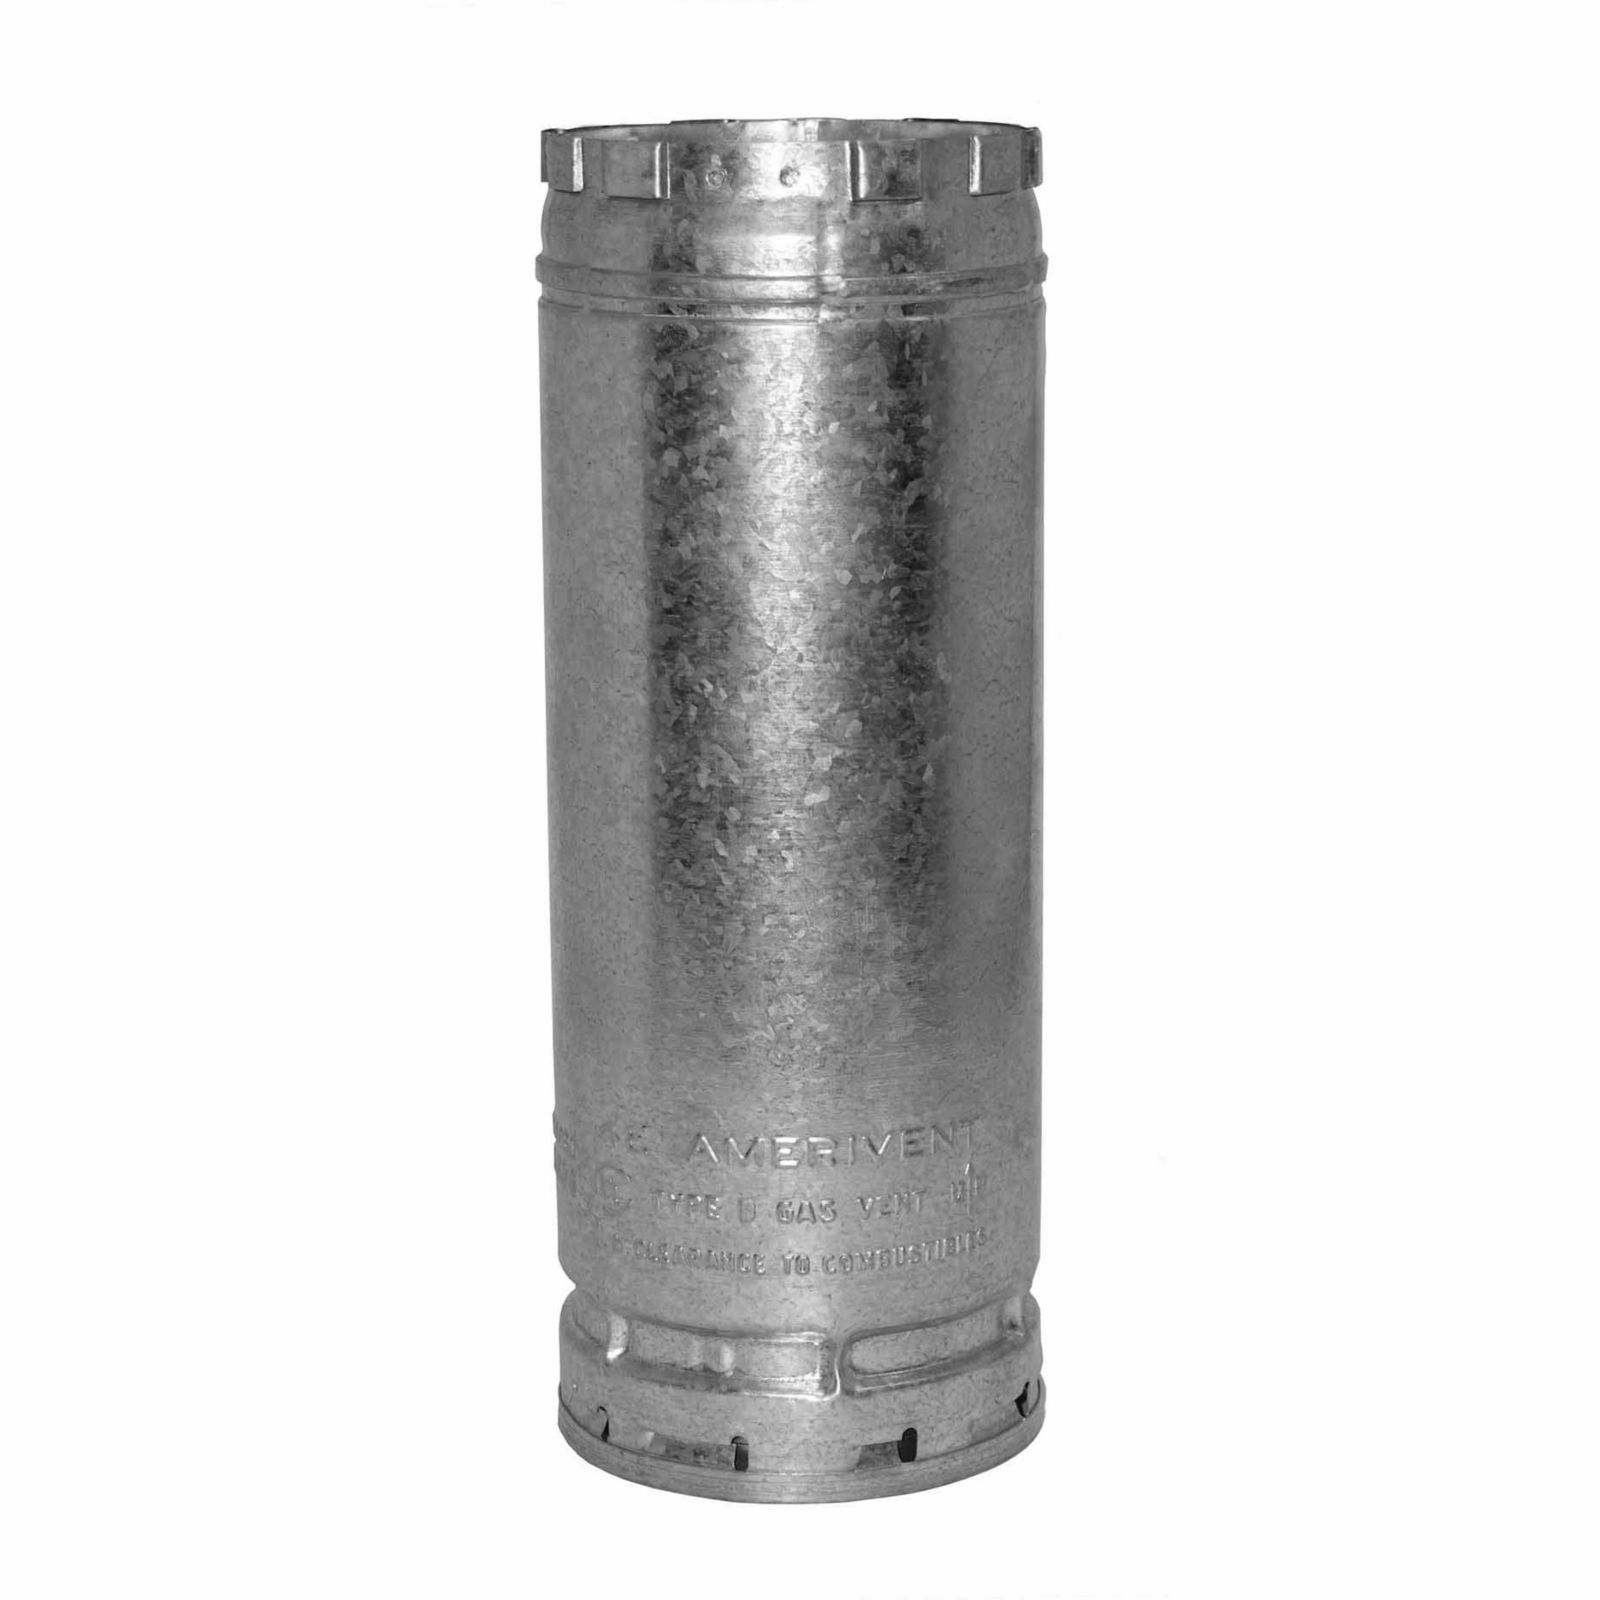 "AmeriVent 3E18 - Pipe Section Type B Gas Vent, 3"" Round X 18"" Length"